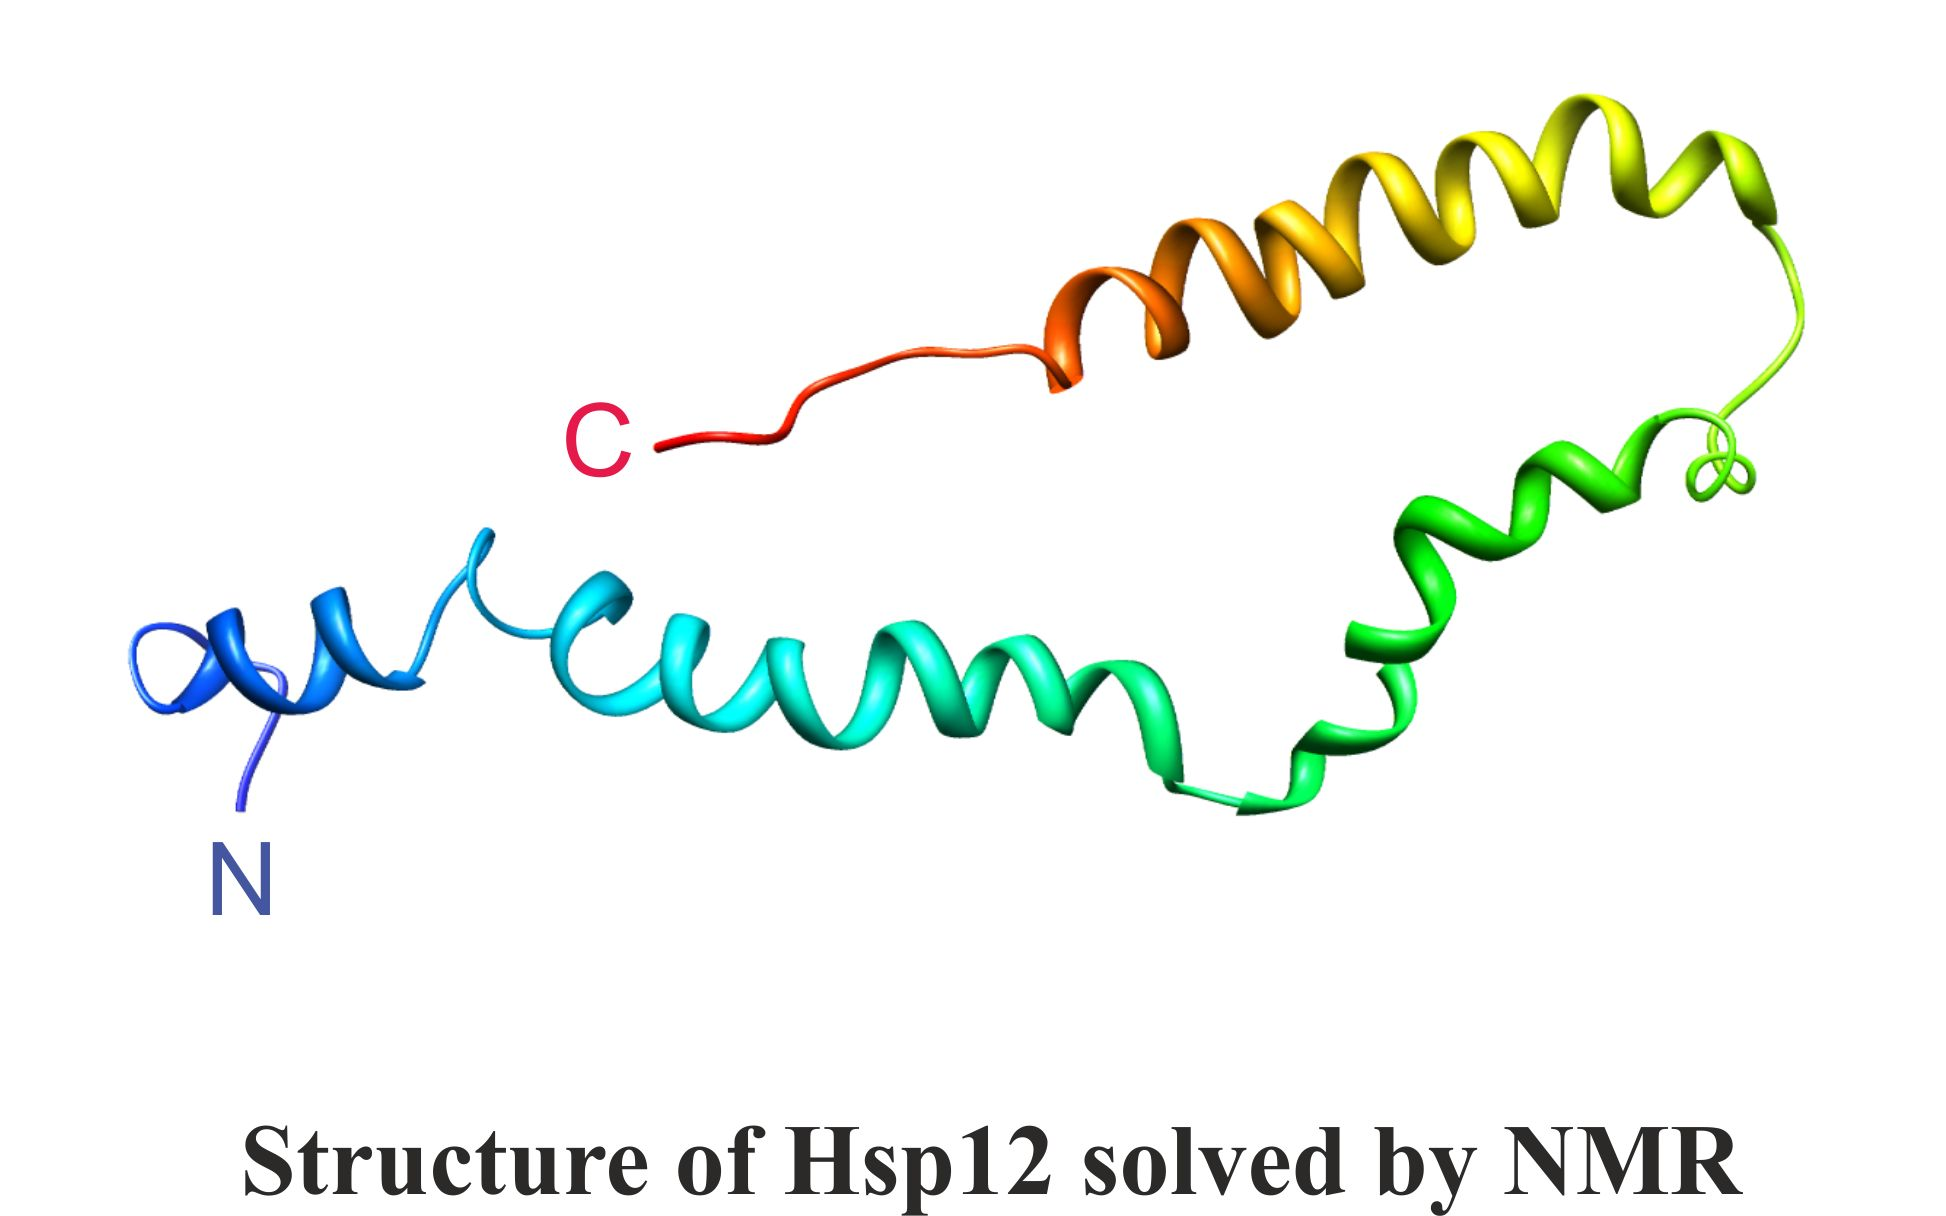 Structure of Hsp12 solved by NMR